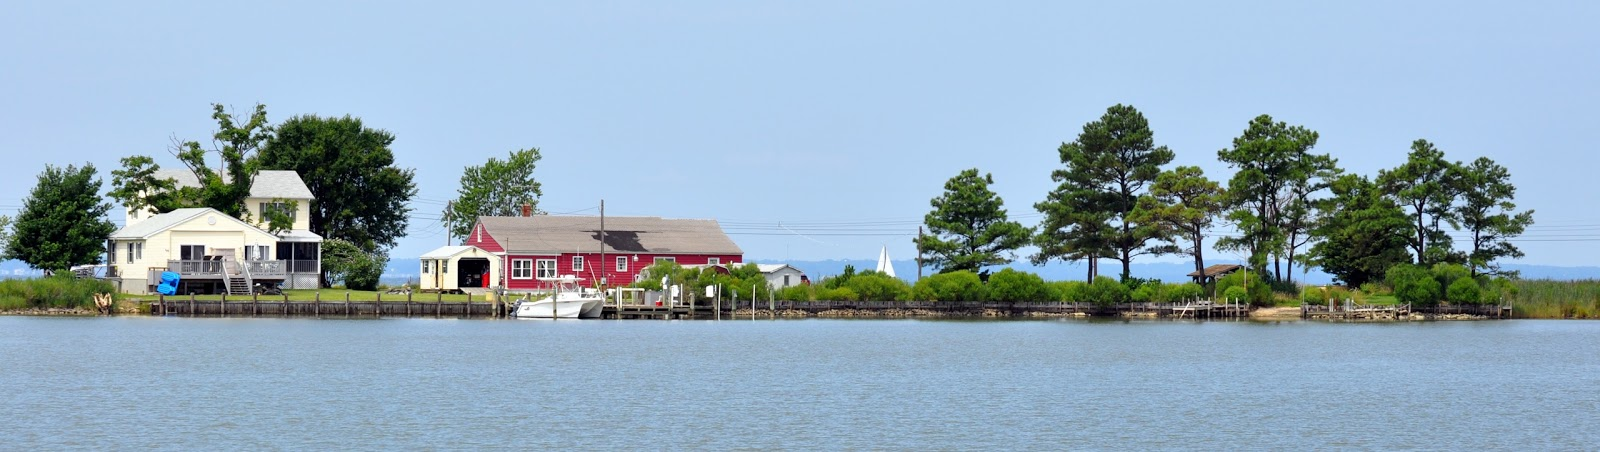 Midatlantic Daytrips A Day On The Bay Tilghman Island St Michaels And Sailing On The Selina Ii